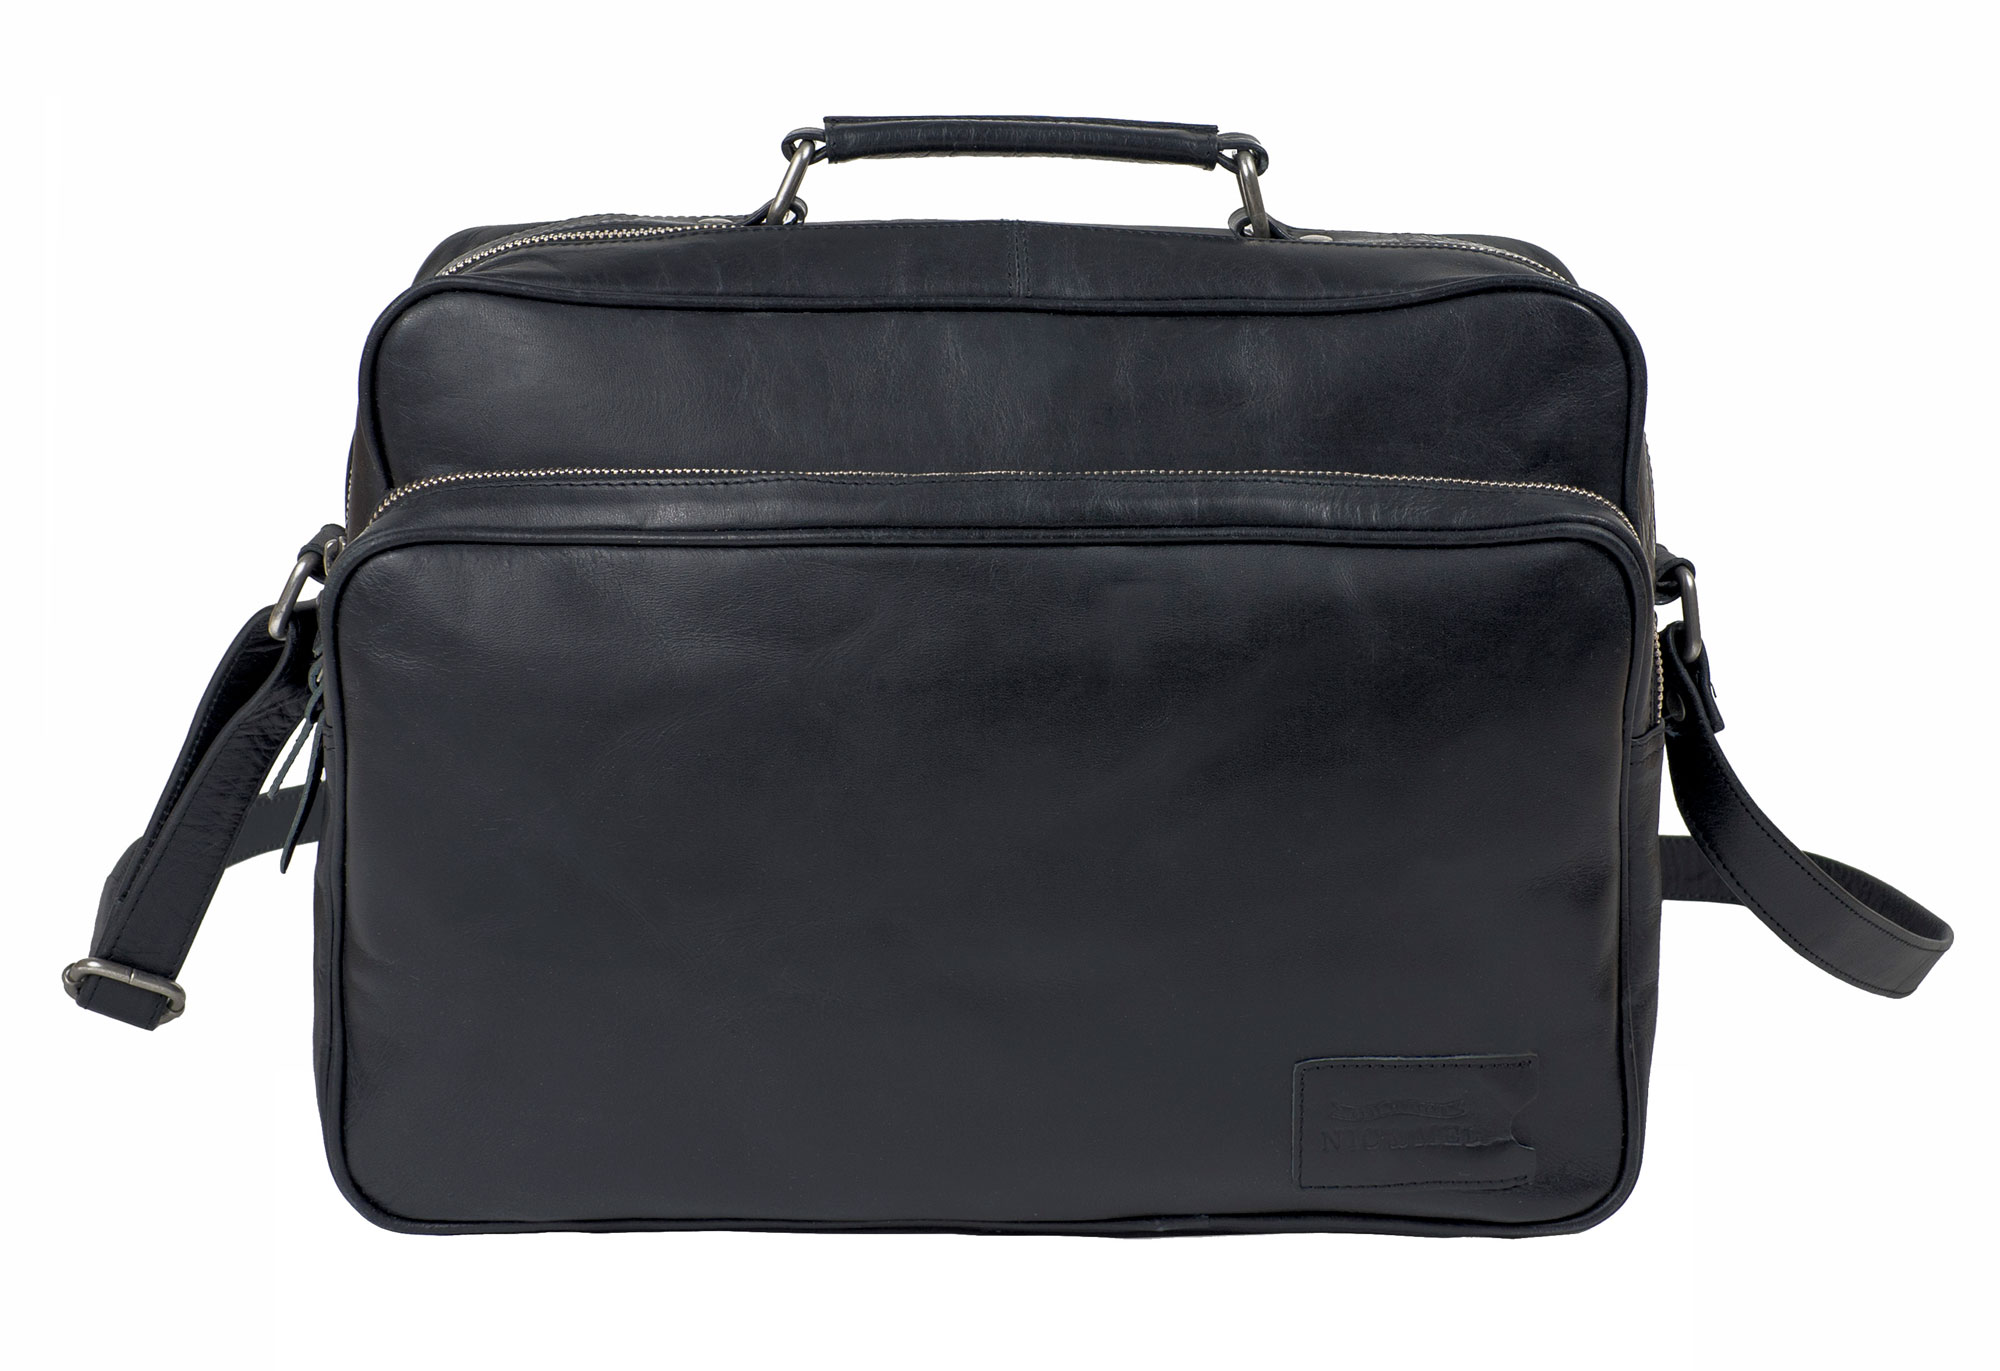 KIRK COMPUTERBAG 12-13″ <br>Black Leather